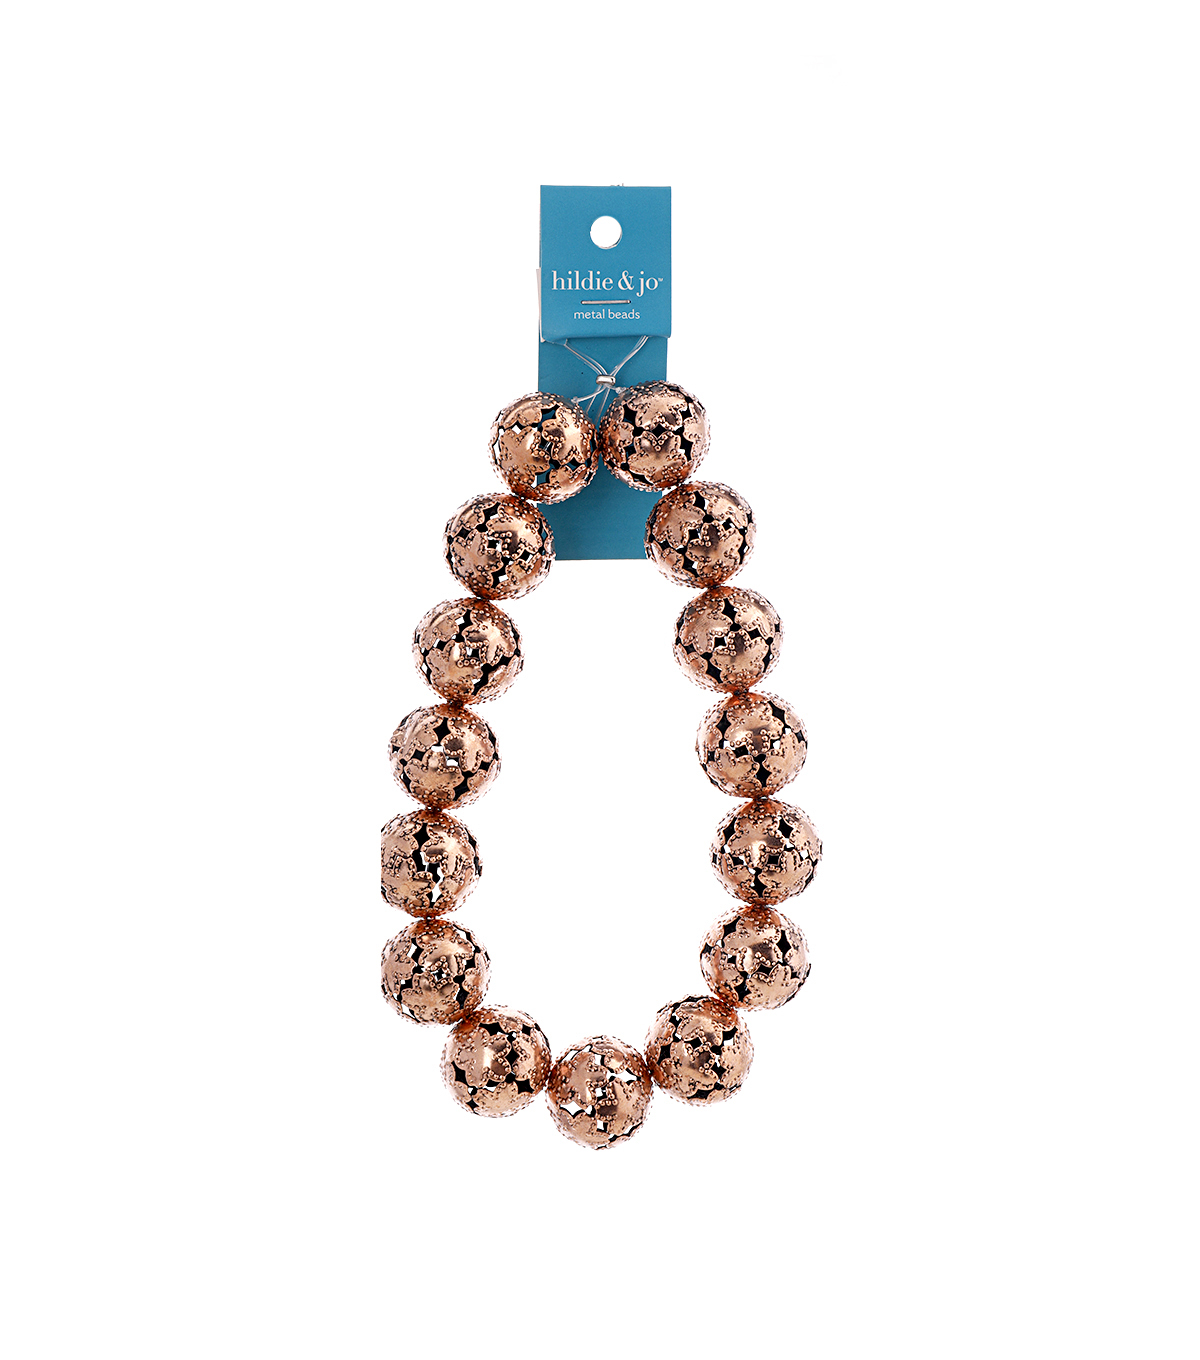 Blue Moon Strung Filigree Metal Beads,Round,Copper,Cutout